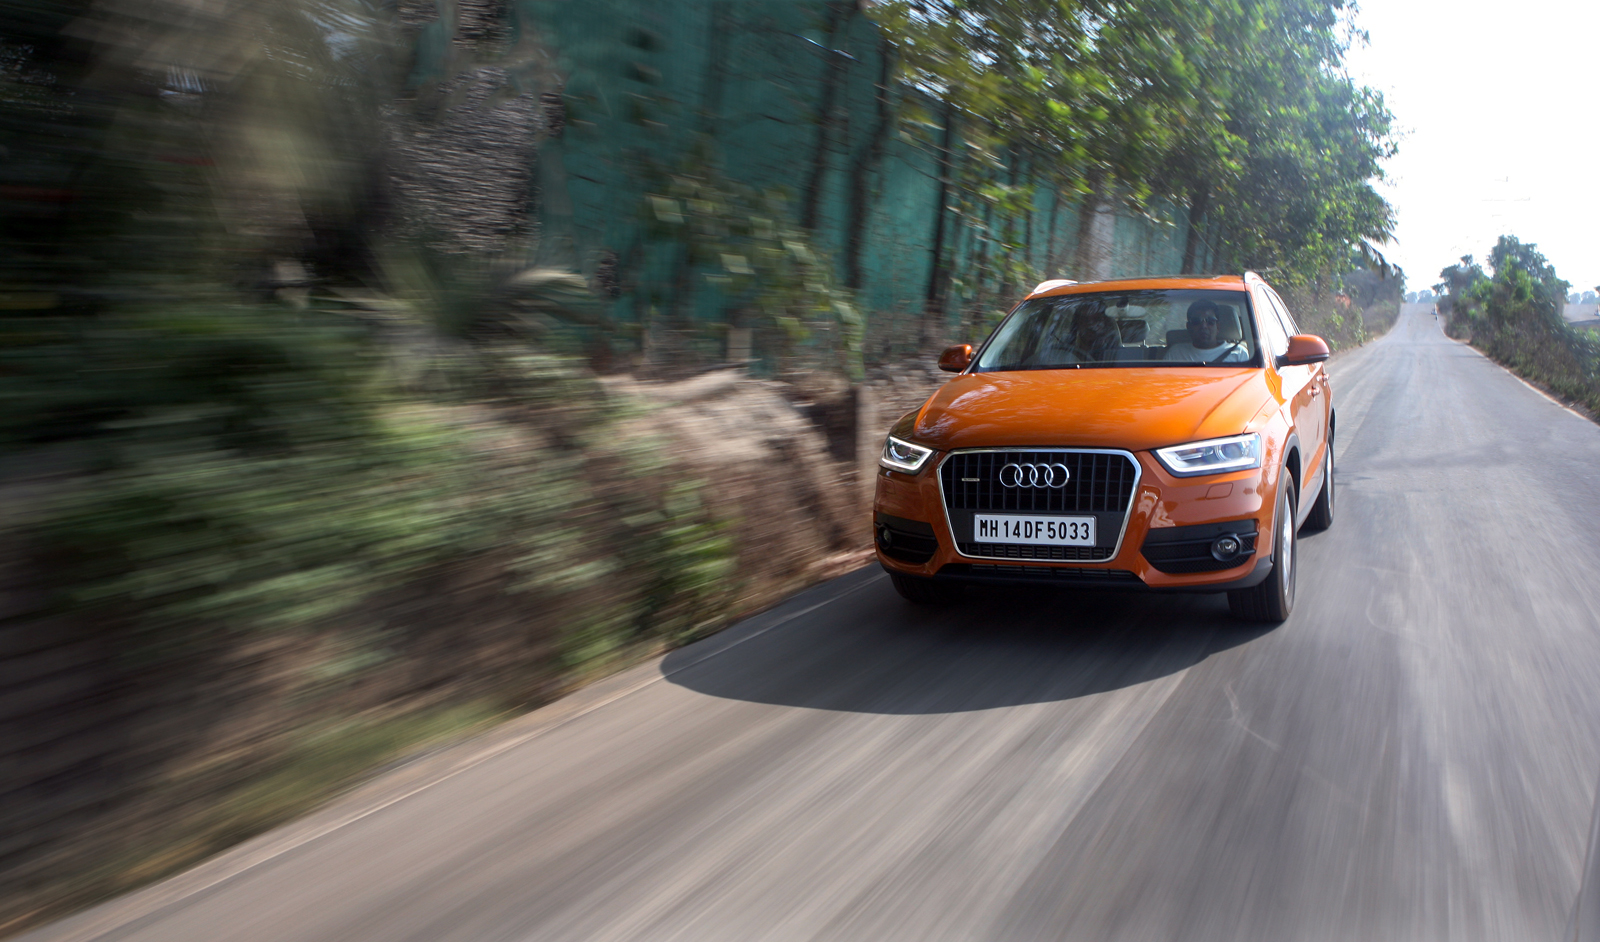 Audi Q3 launched at INR 26.21 lakhs